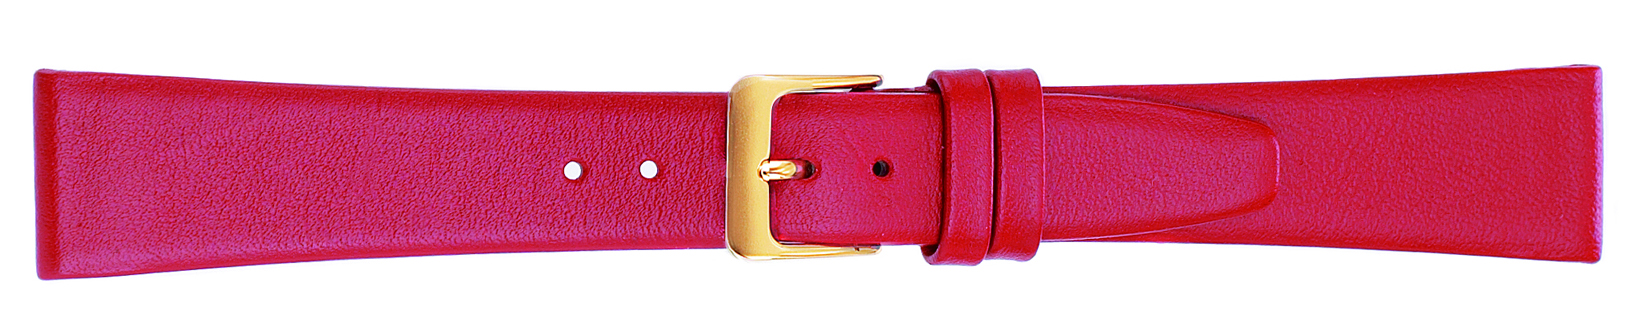 12MM Leather Band Red Smooth Calf-0